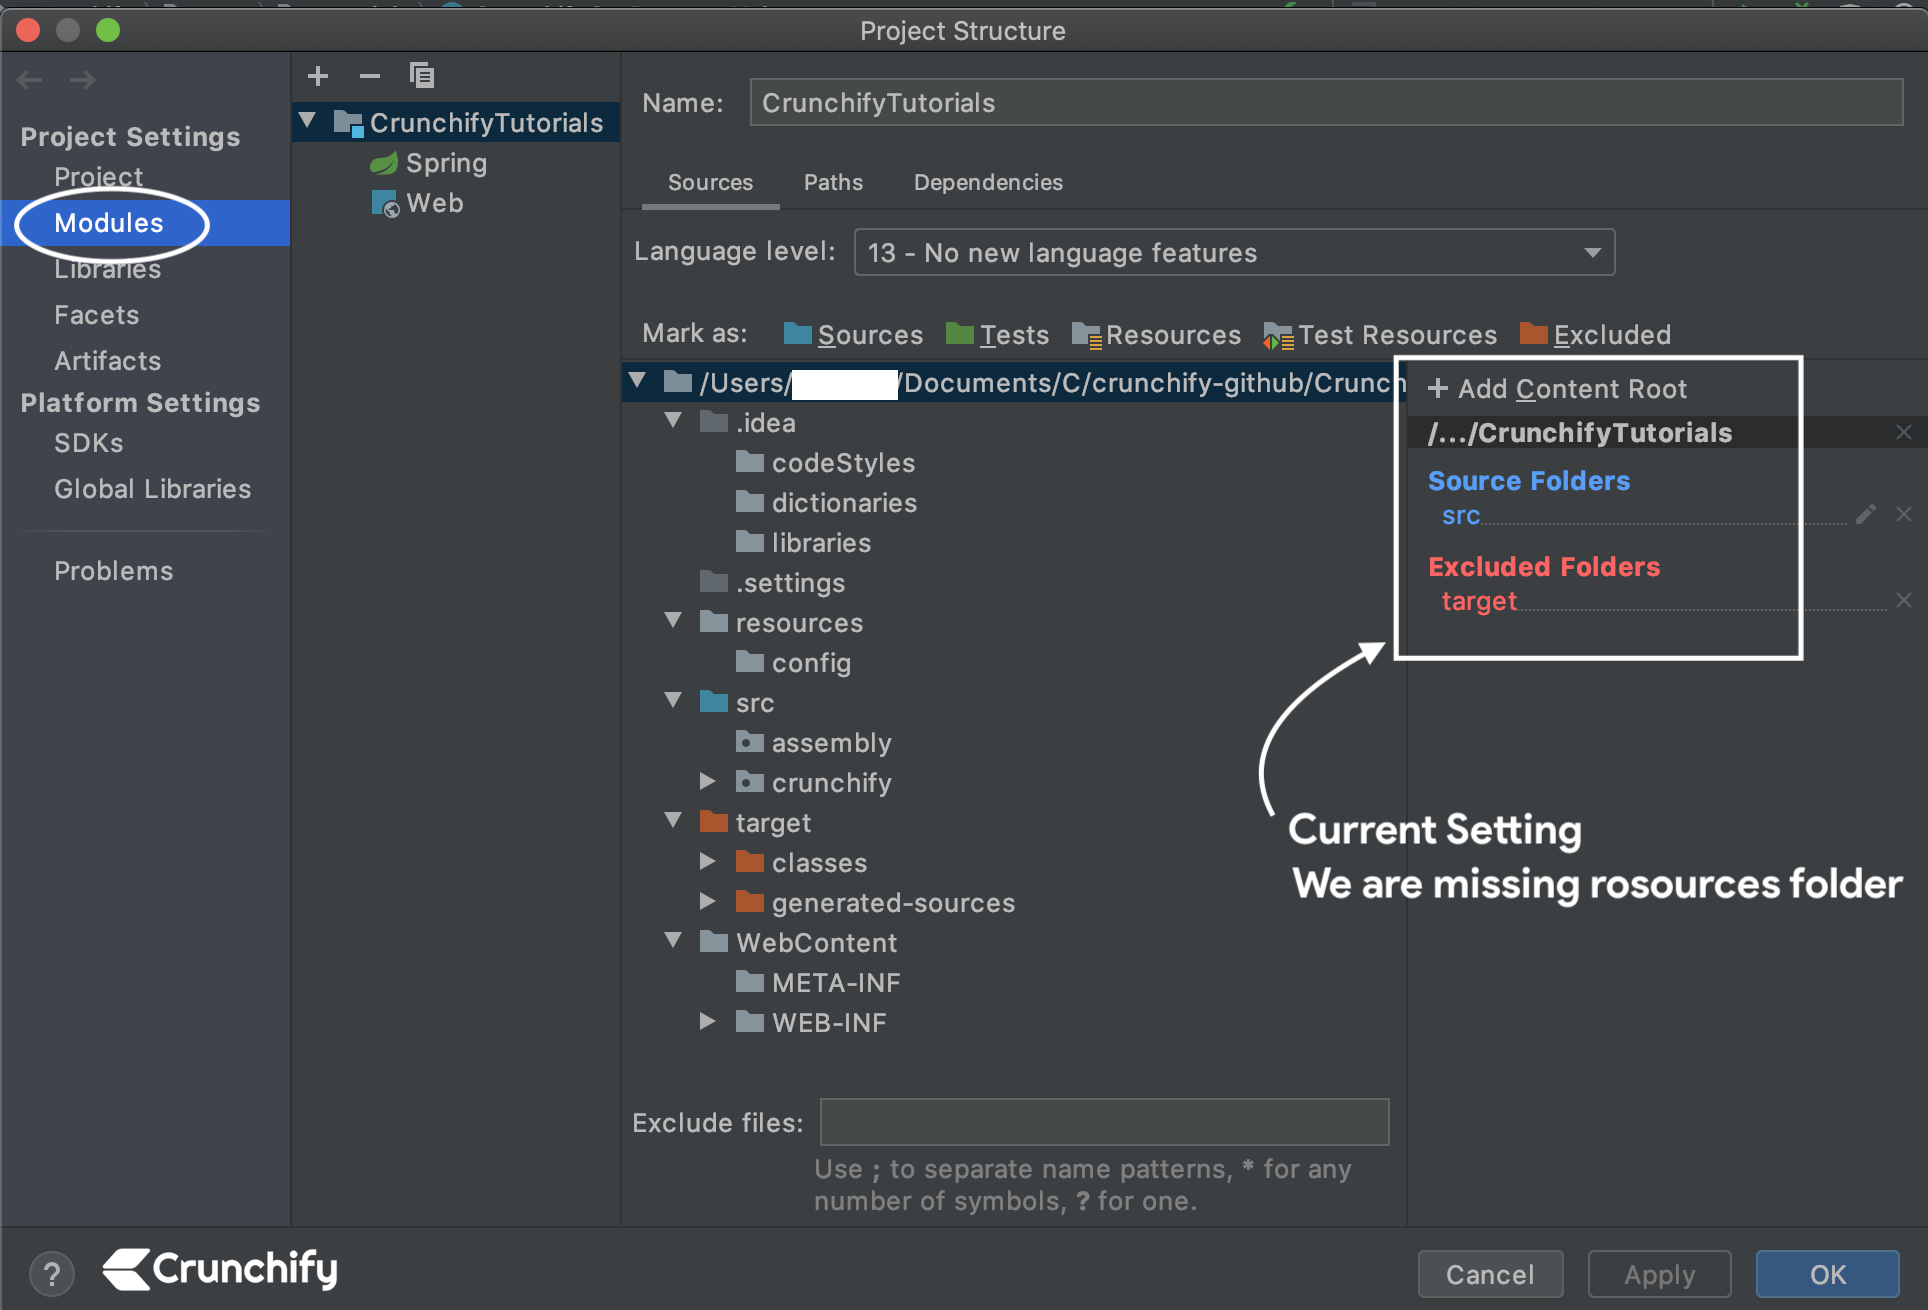 IntelliJ Click on Modules Tab and check added resources - Crunchify